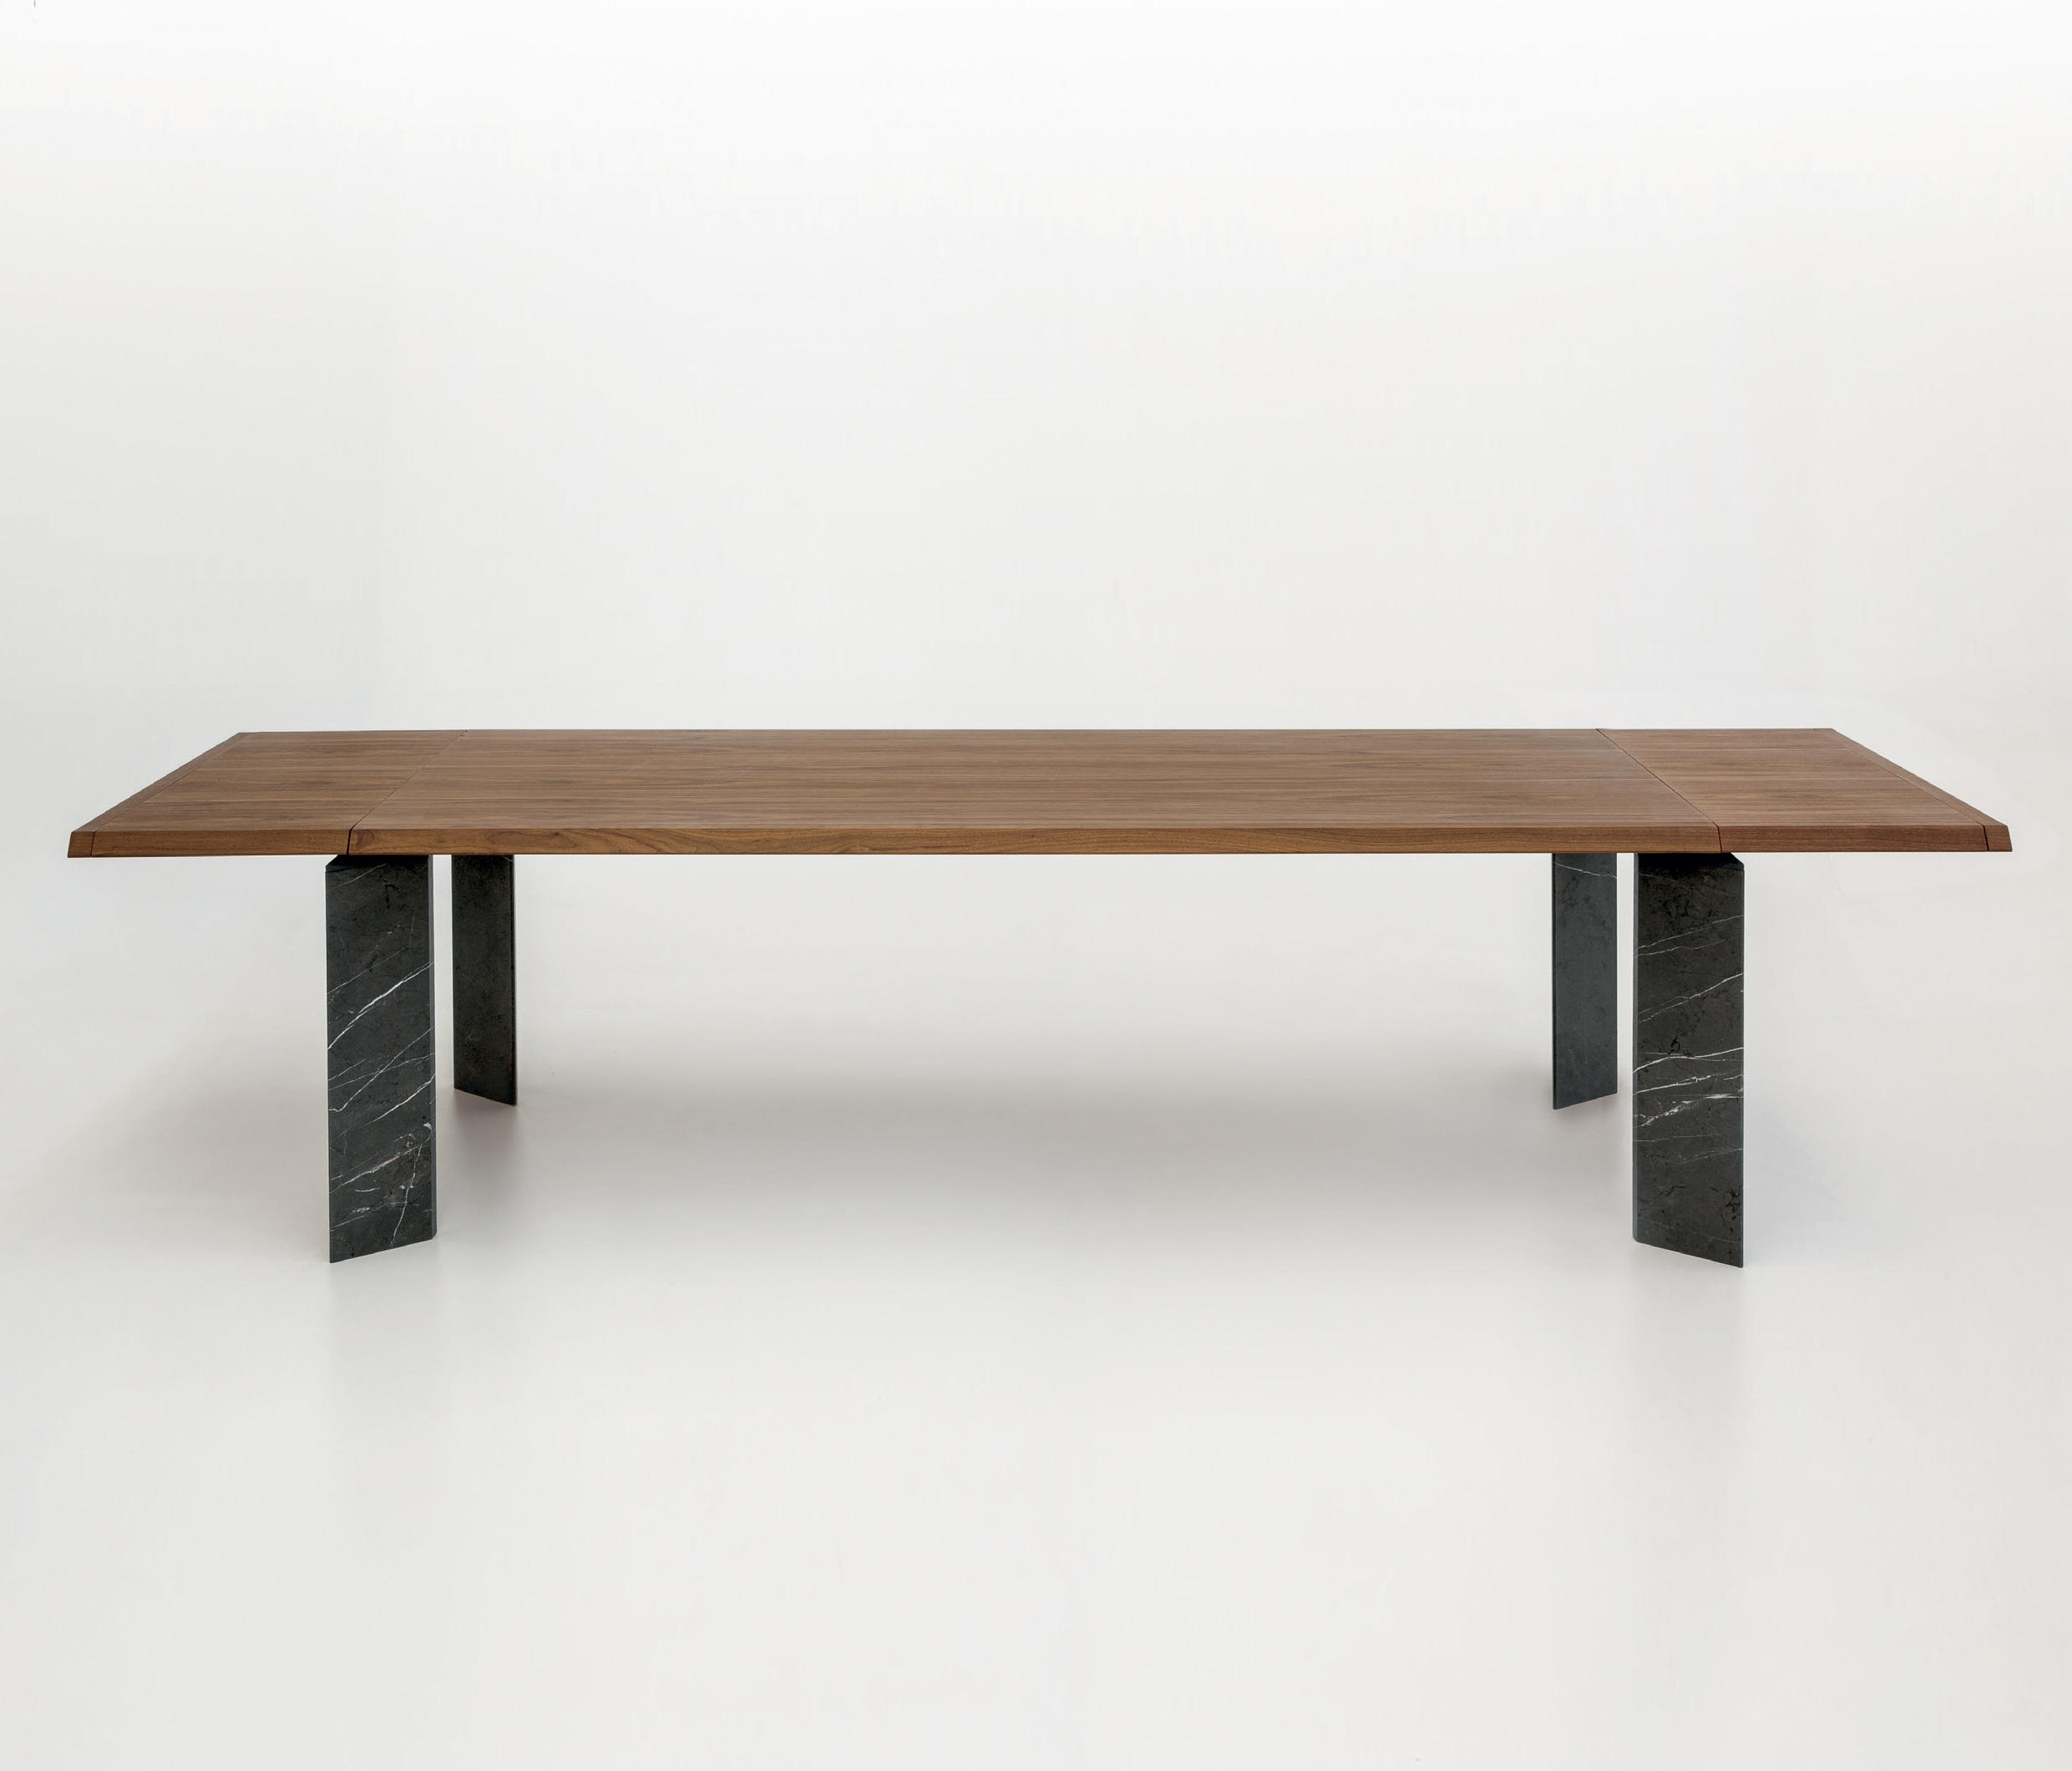 Architonic Within Most Recently Released Roma Dining Tables (Gallery 11 of 25)